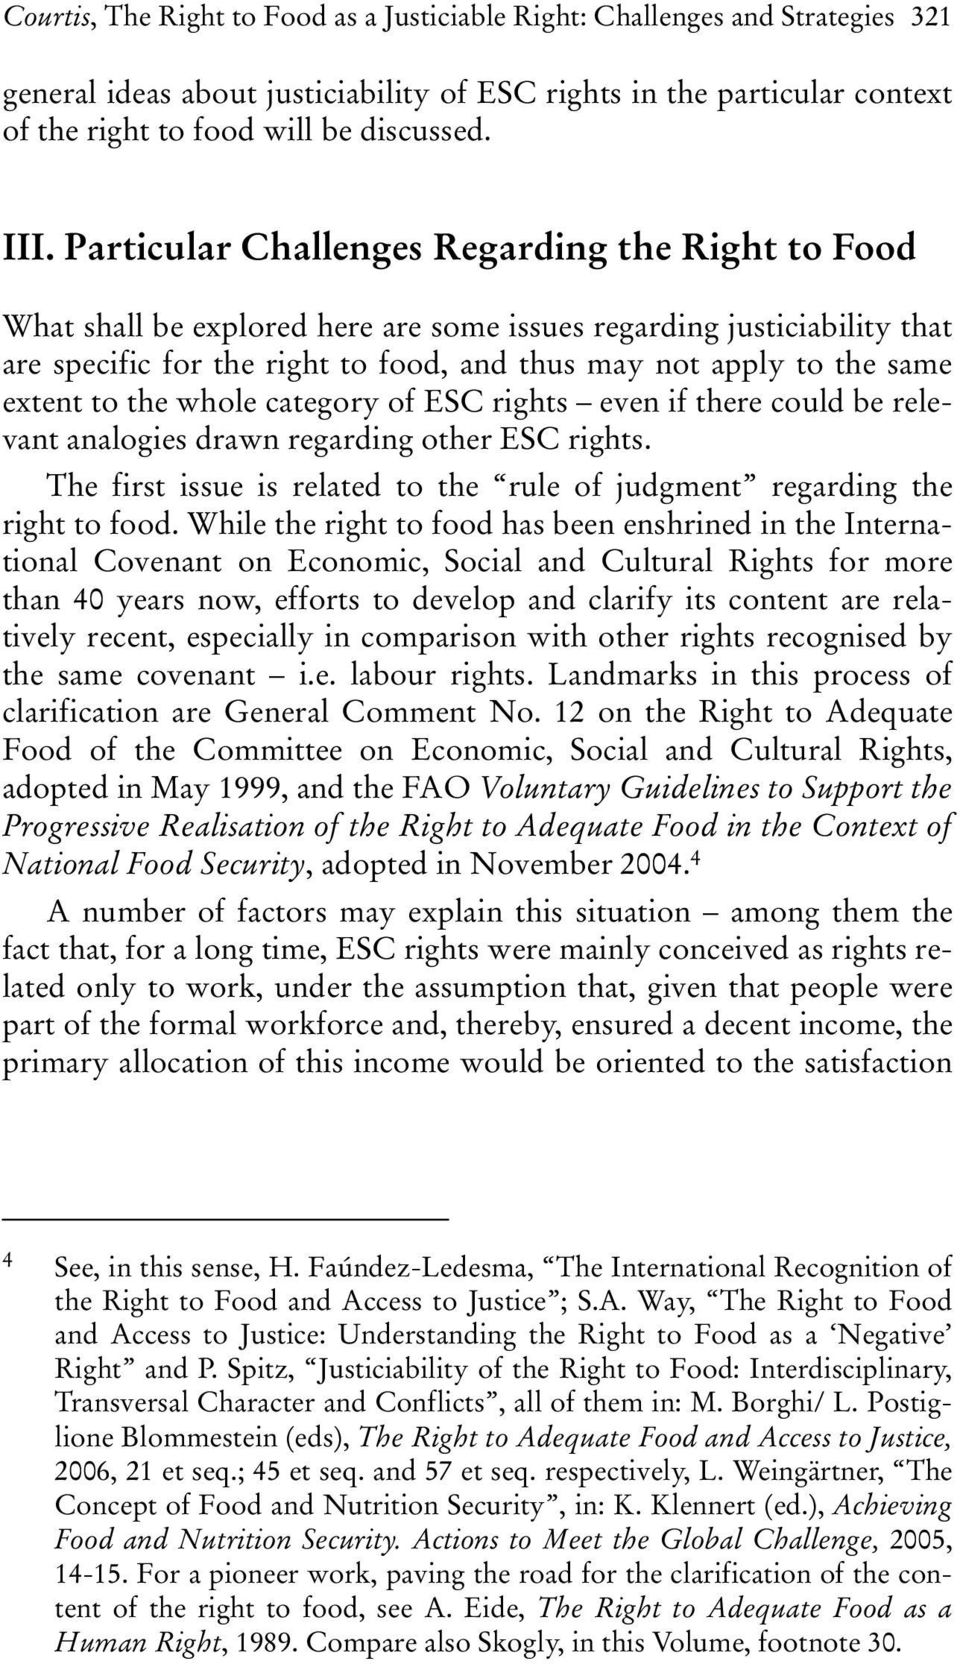 extent to the whole category of ESC rights even if there could be relevant analogies drawn regarding other ESC rights. The first issue is related to the rule of judgment regarding the right to food.